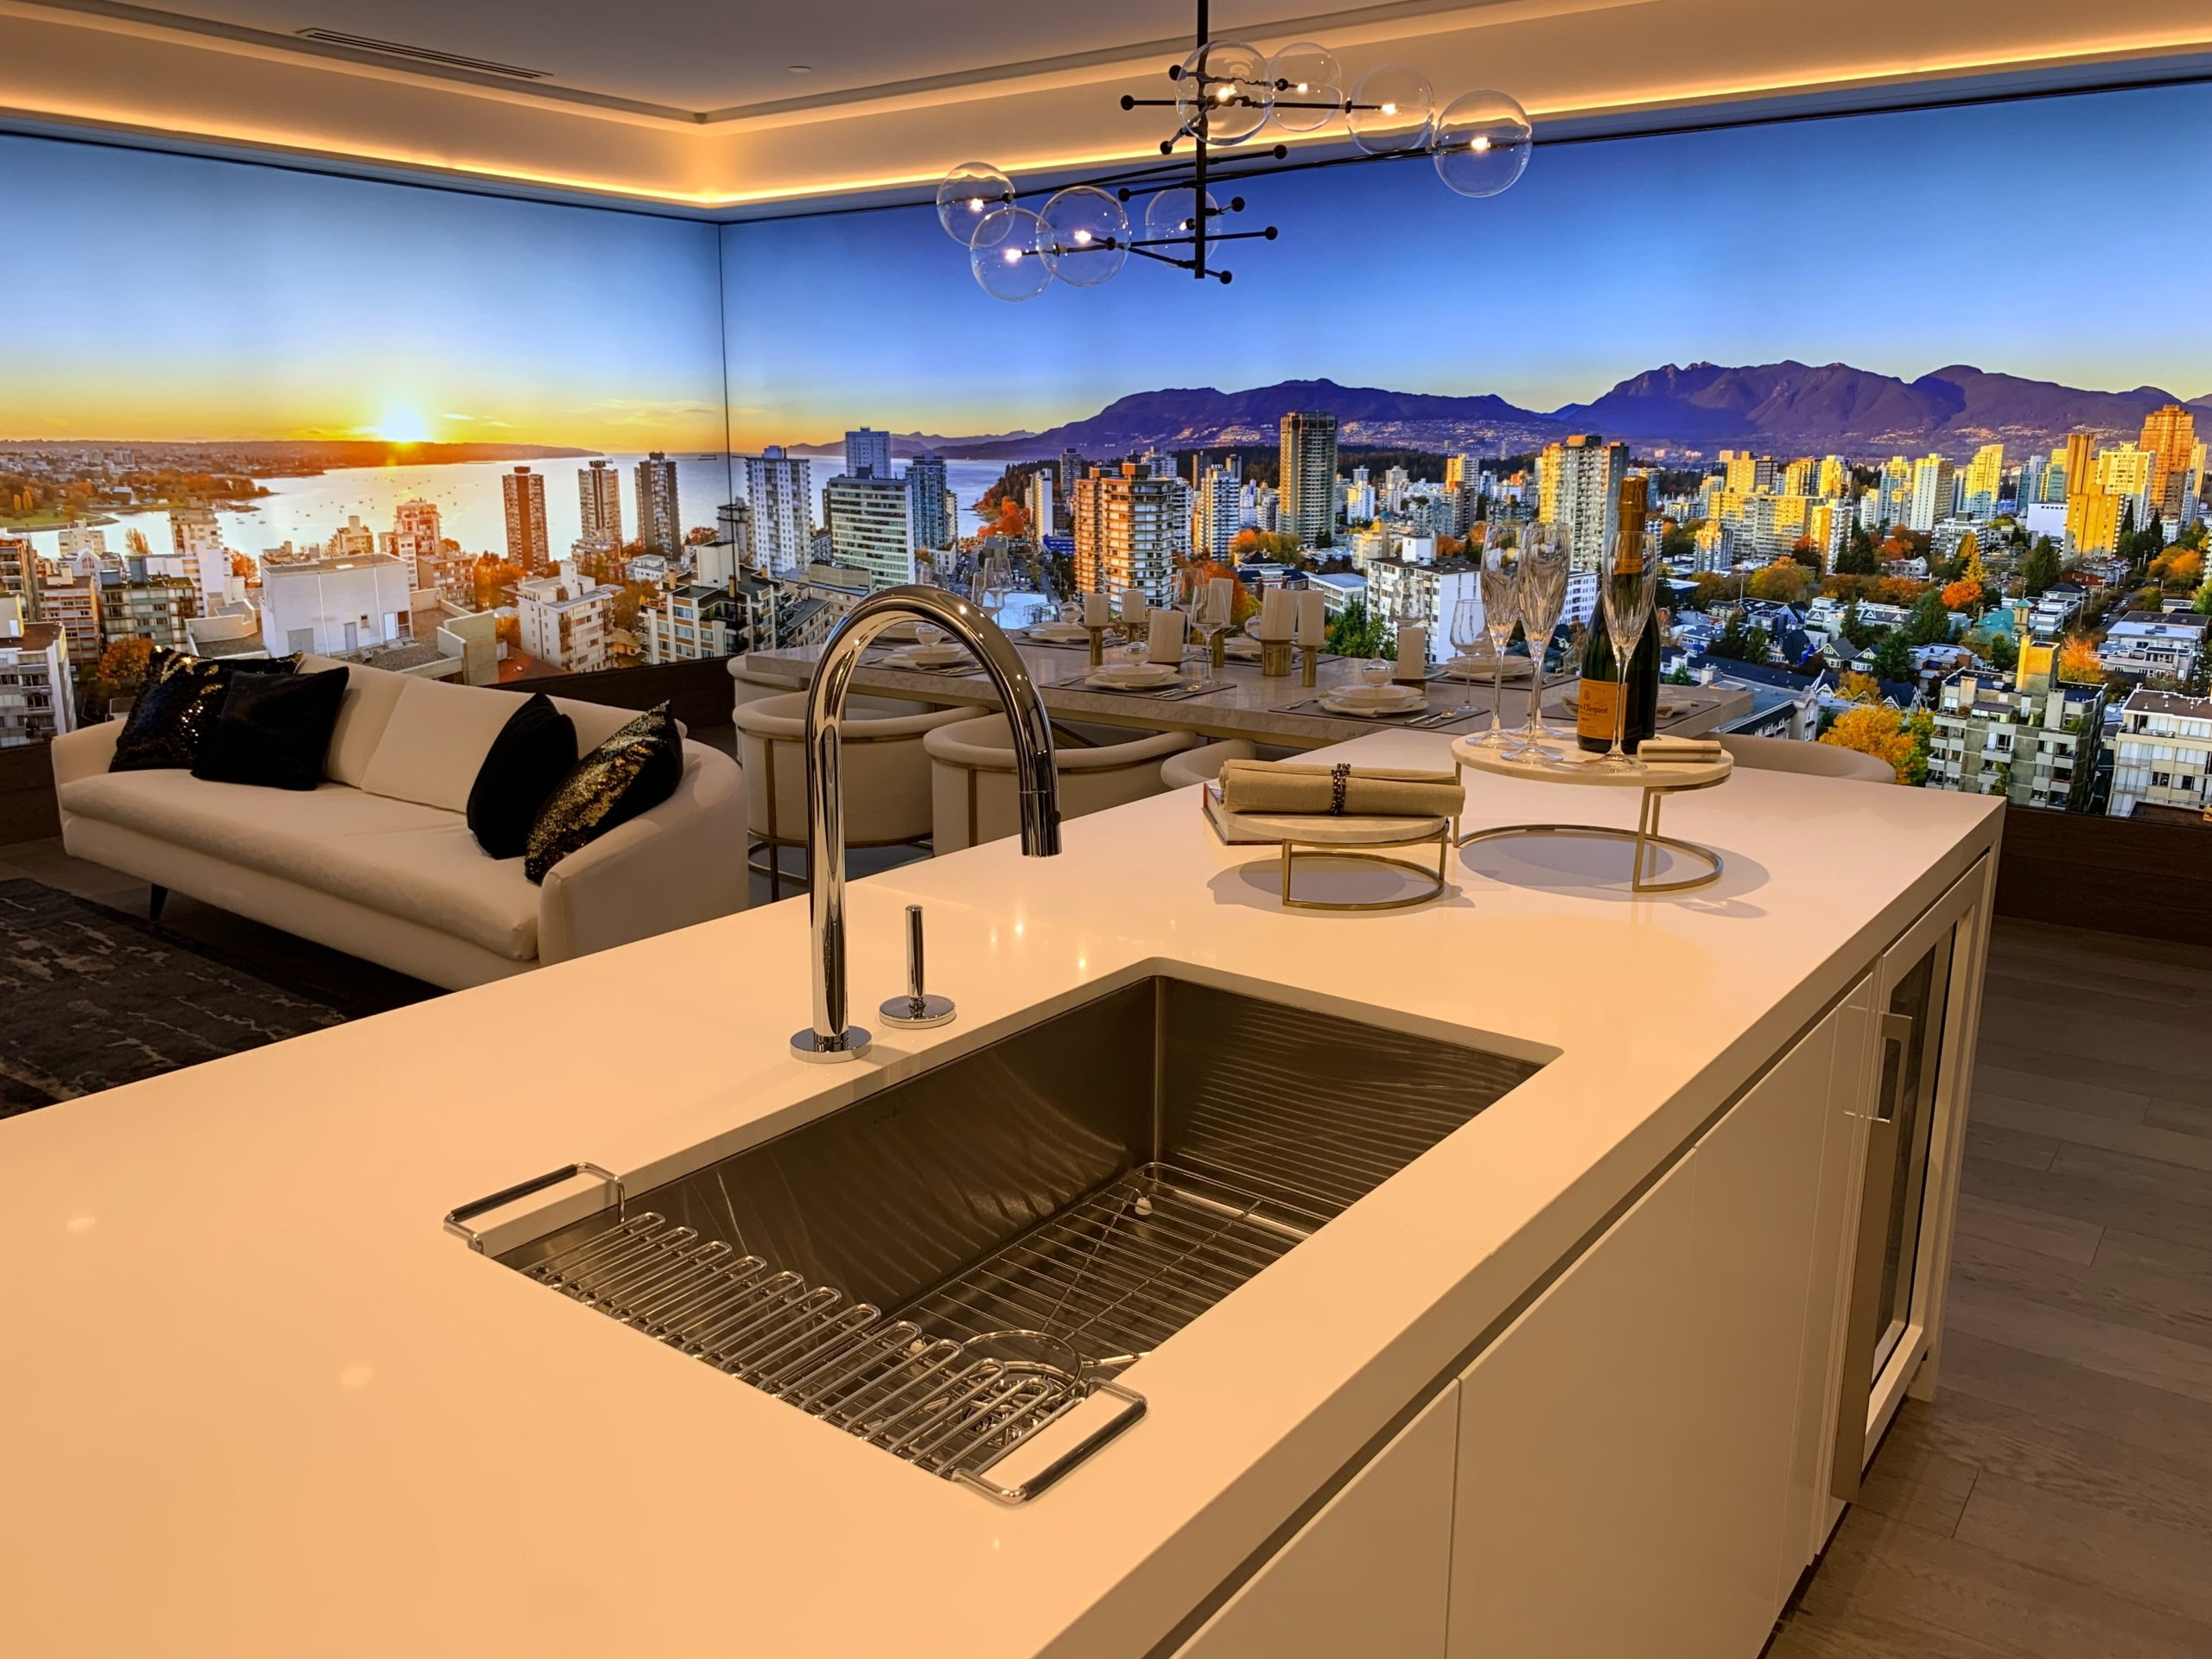 Kitchen with landscape mural on the wall